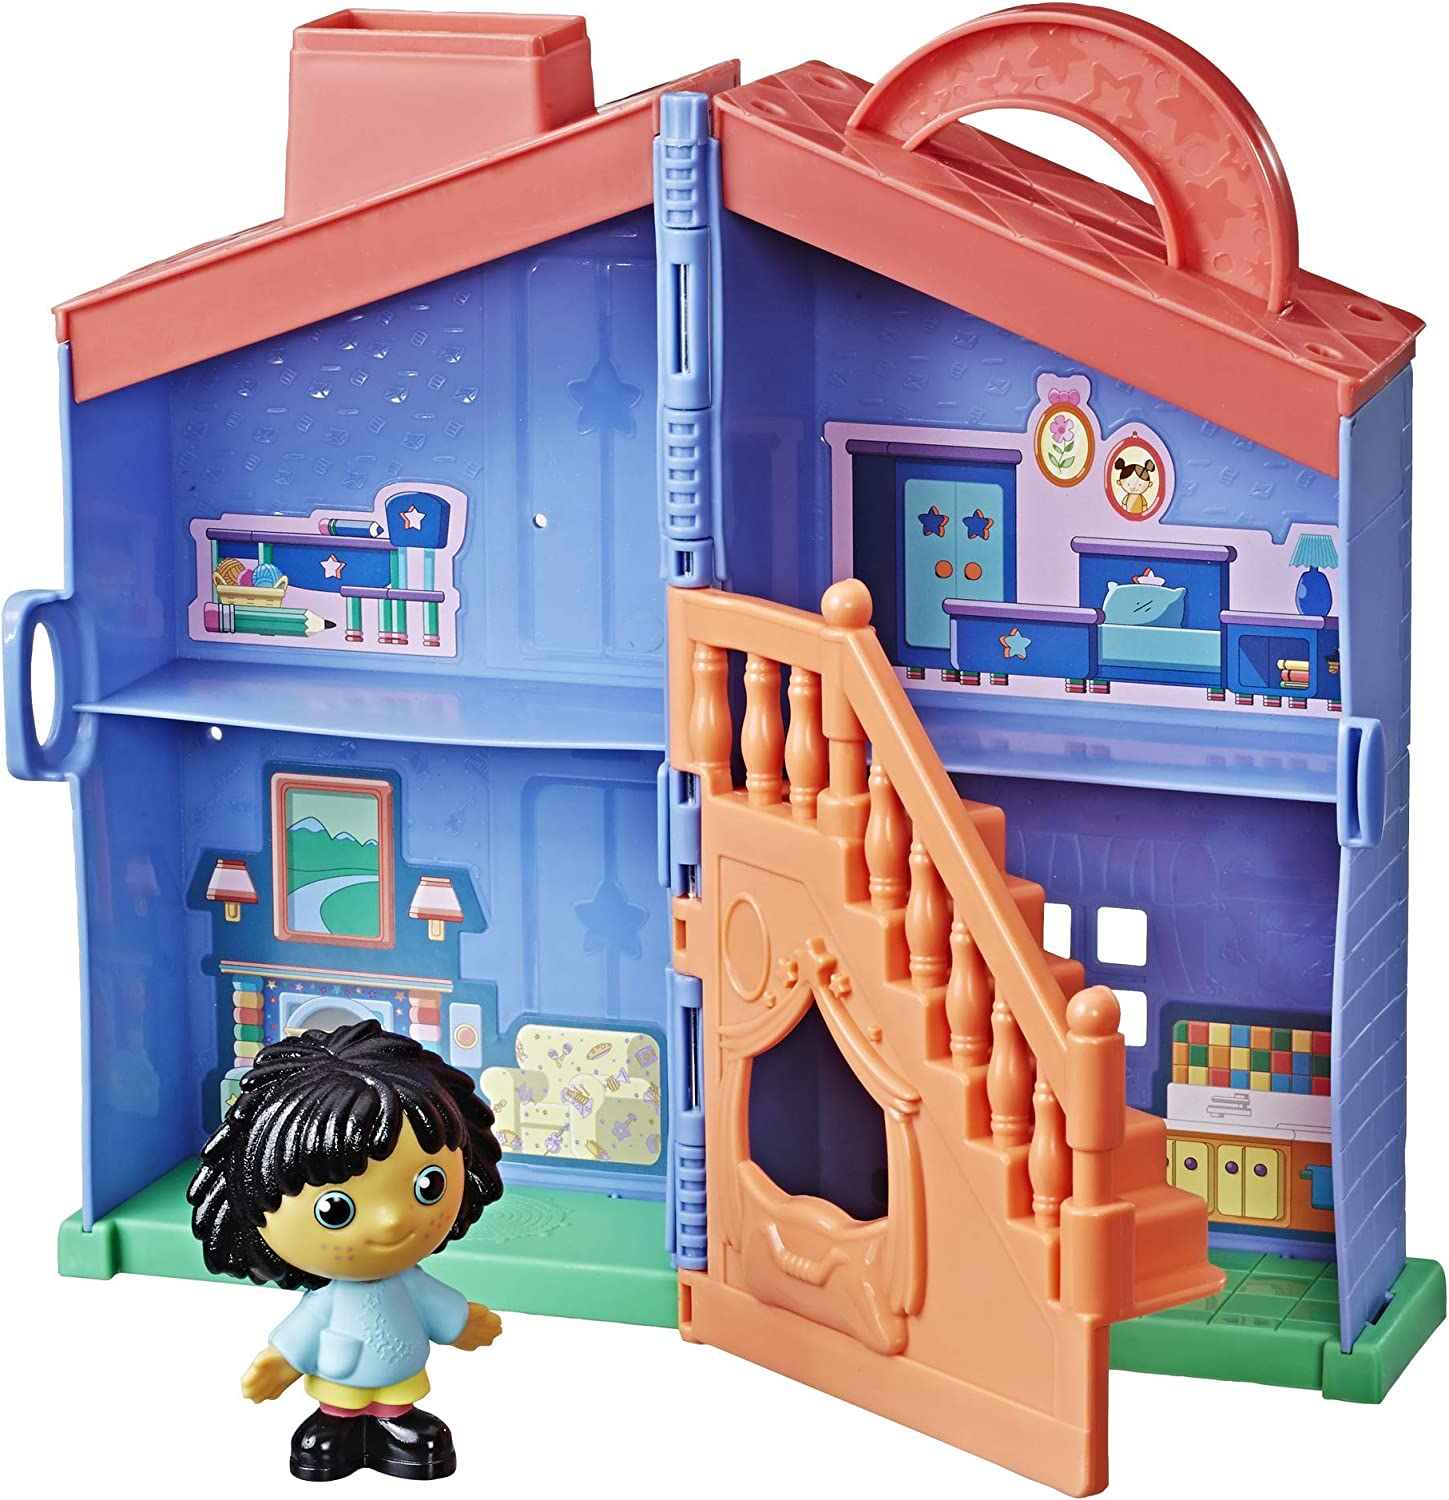 Moon and Me Brand New On the Go Toyhouse Playset